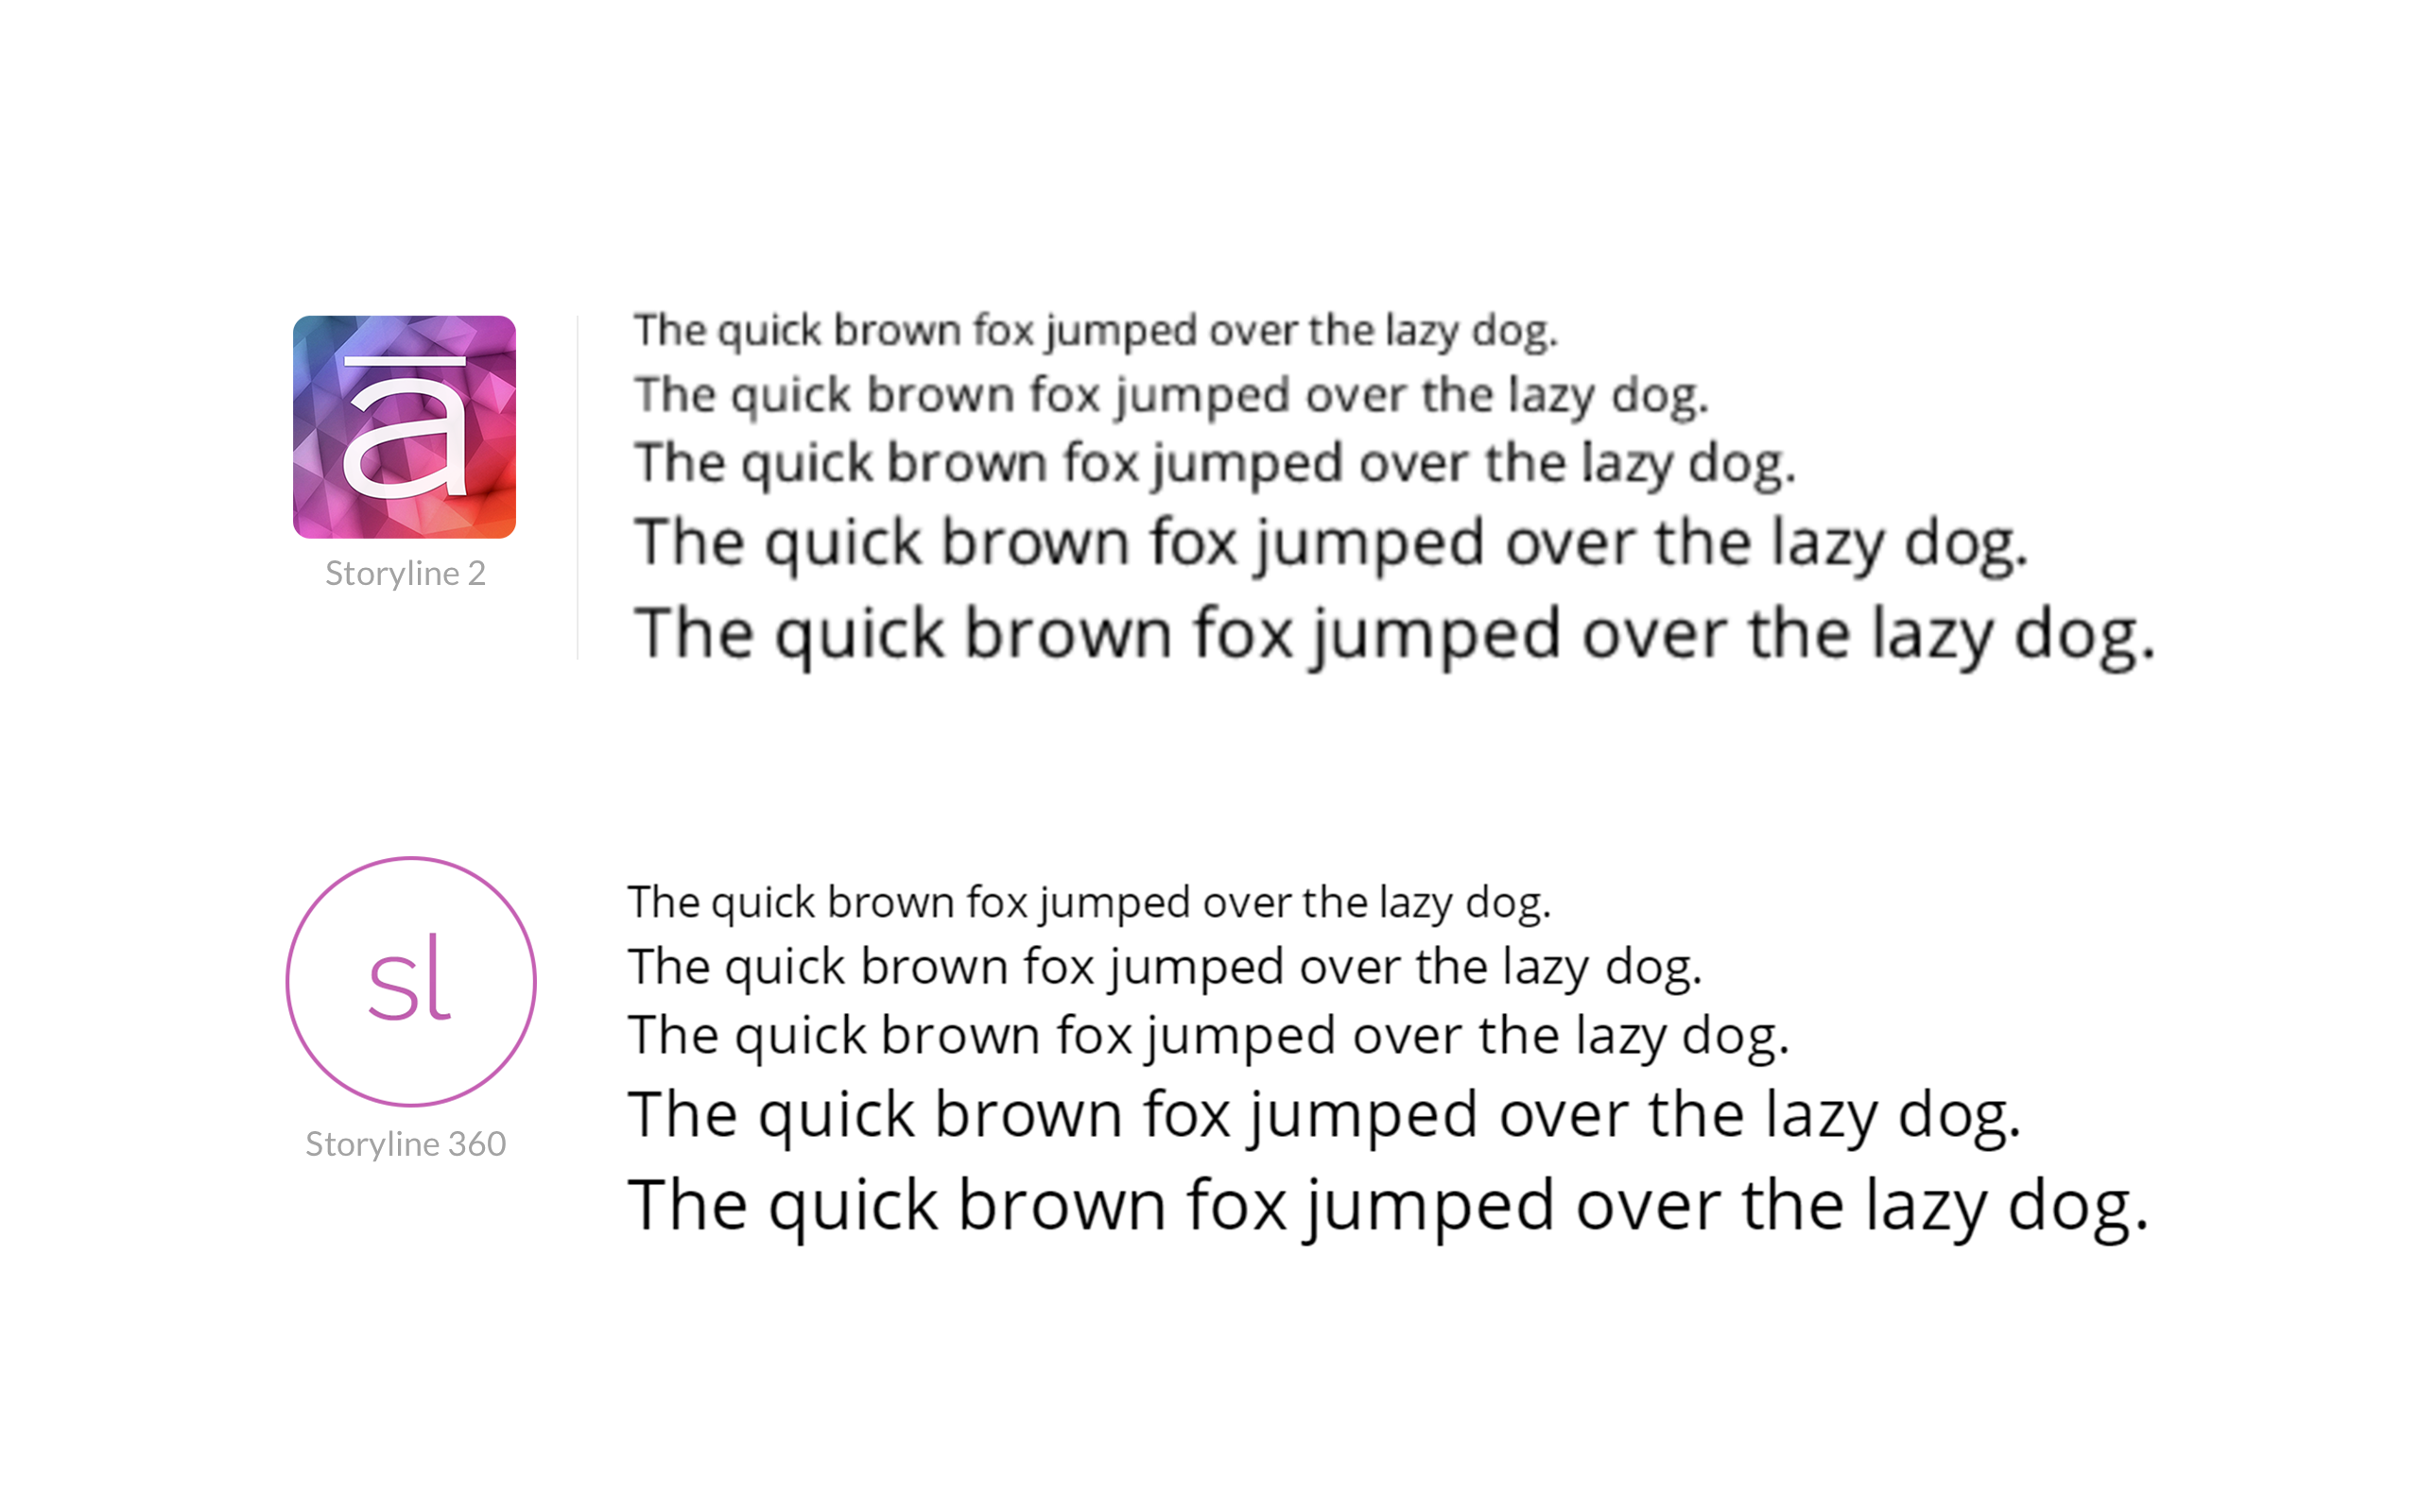 comparing the display of vector shapes for fonts versus web fonts in improved HTML5 output of Storyline 360